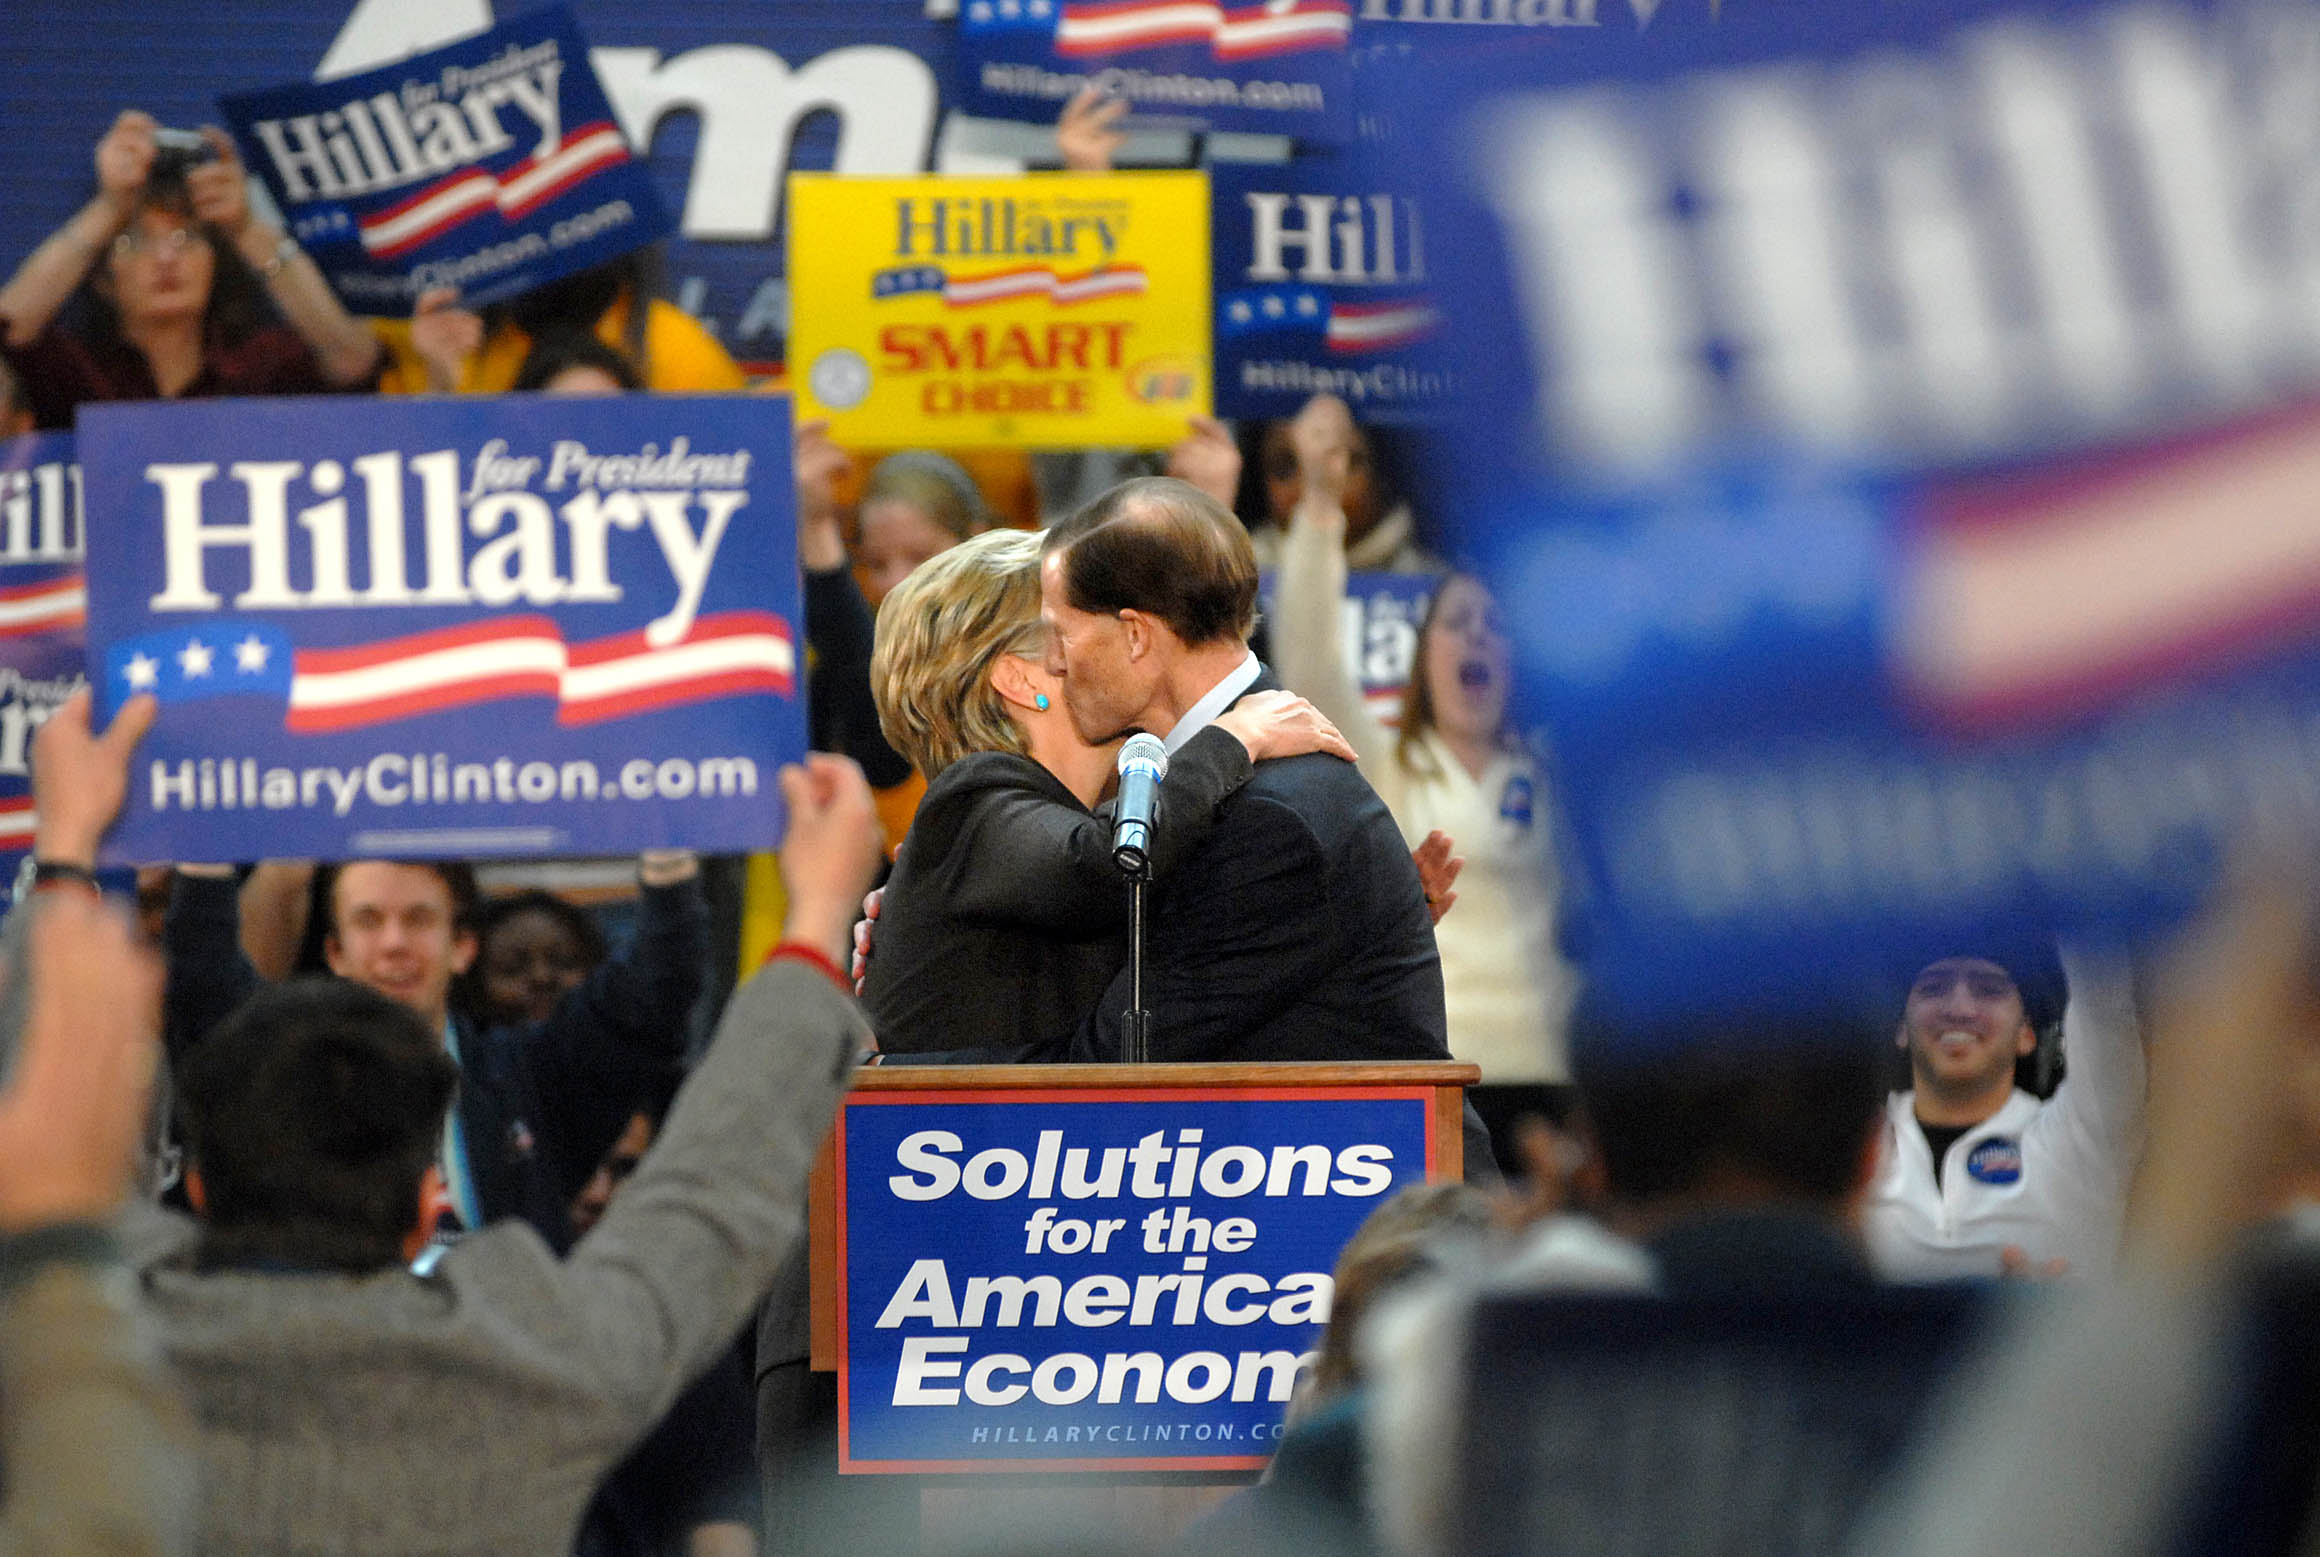 Connecticut Attorney General Richard Blumenthal, center right, embraces then-Sen. Hillary Clinton at a rally in Hartford during her bid for the Democratic presidential nomination in 2008.